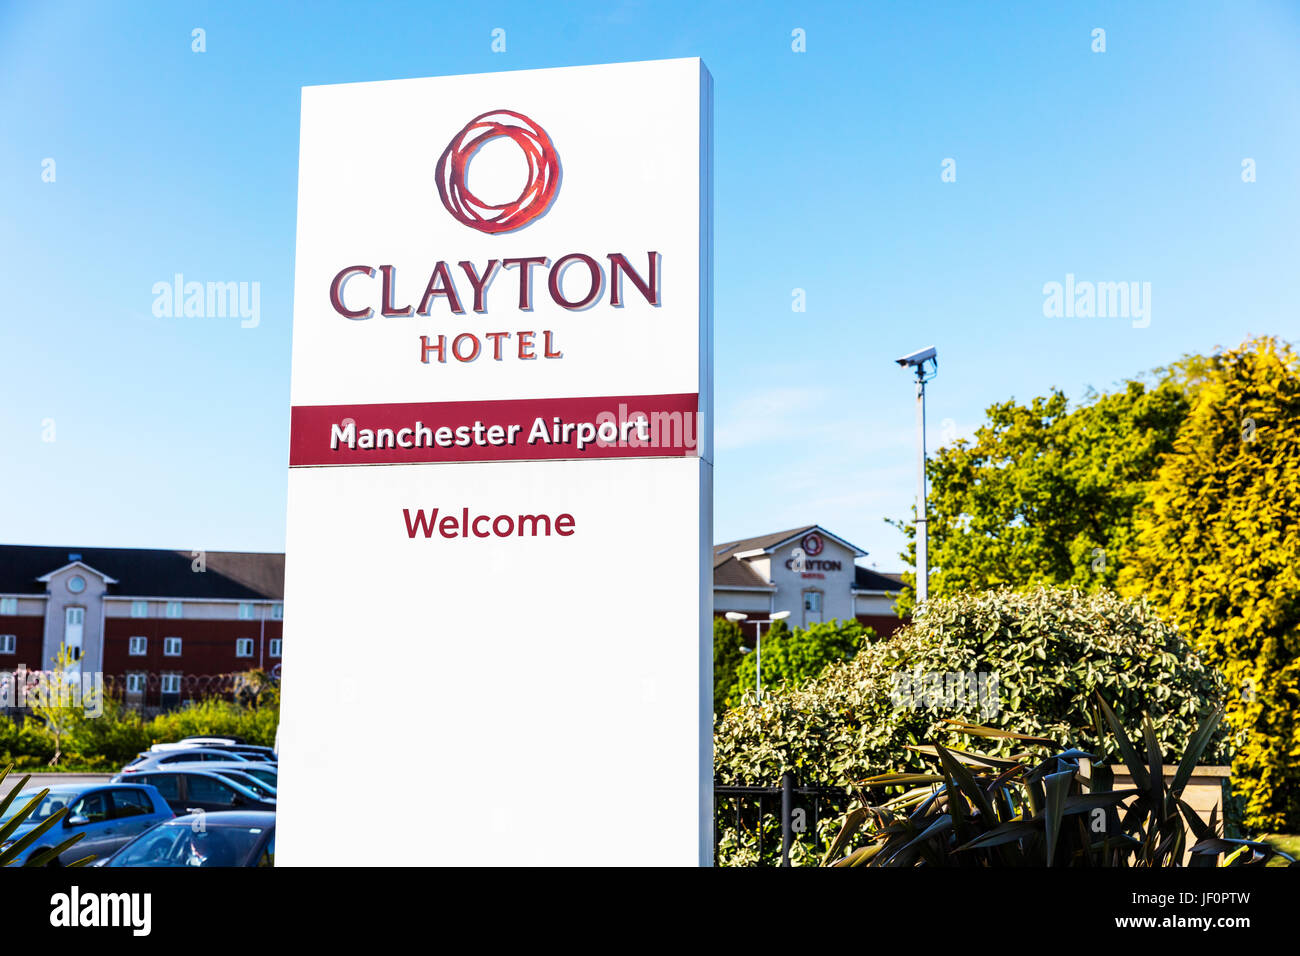 Clayton Hotel Manchester airport, Clayton Hotel, Manchester airport hotels, Manchester airport hotel, welcome sign, - Stock Image